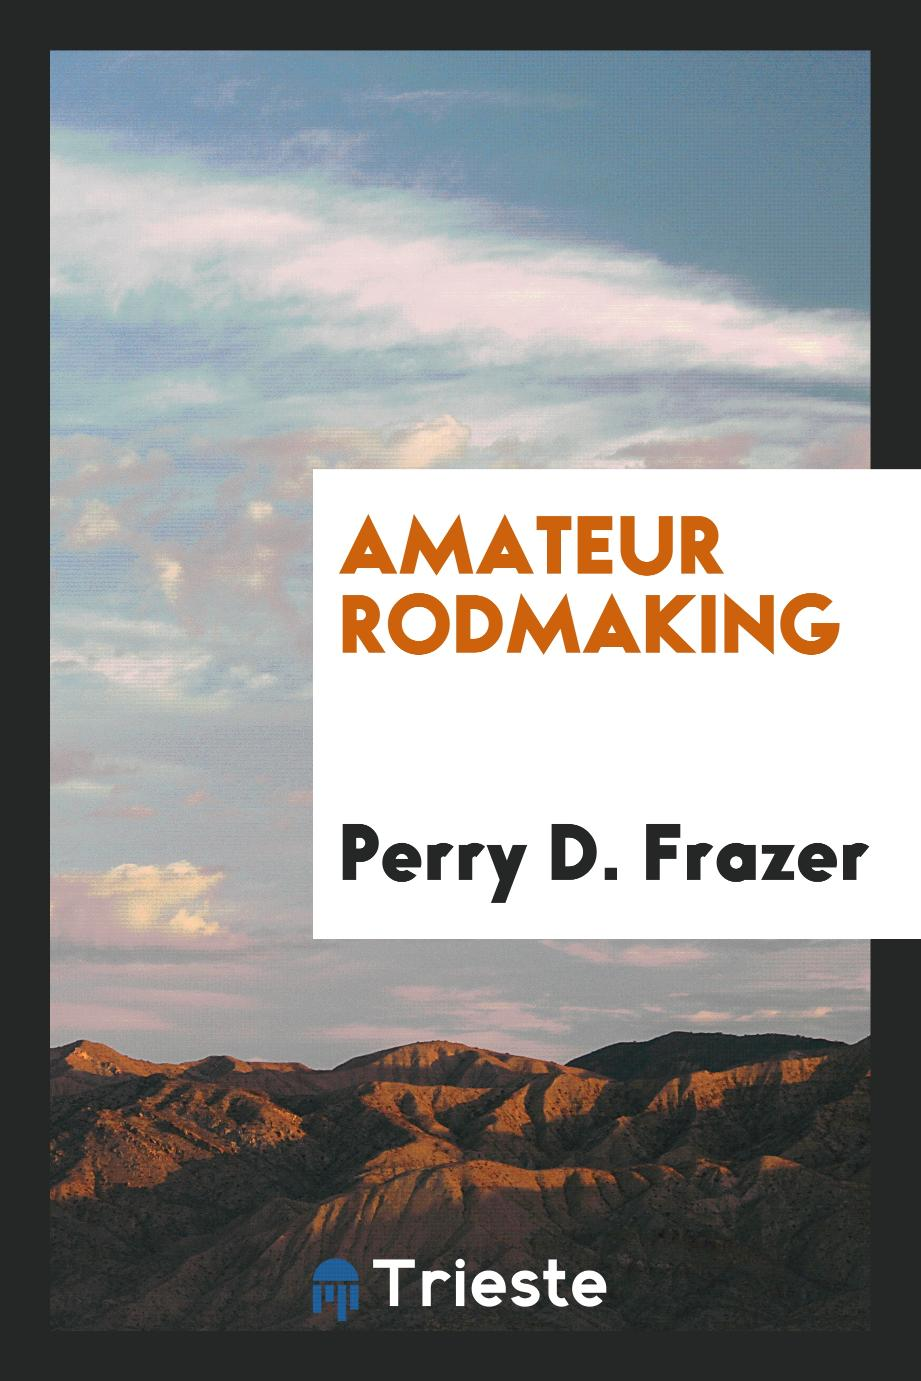 Perry D. Frazer - Amateur rodmaking